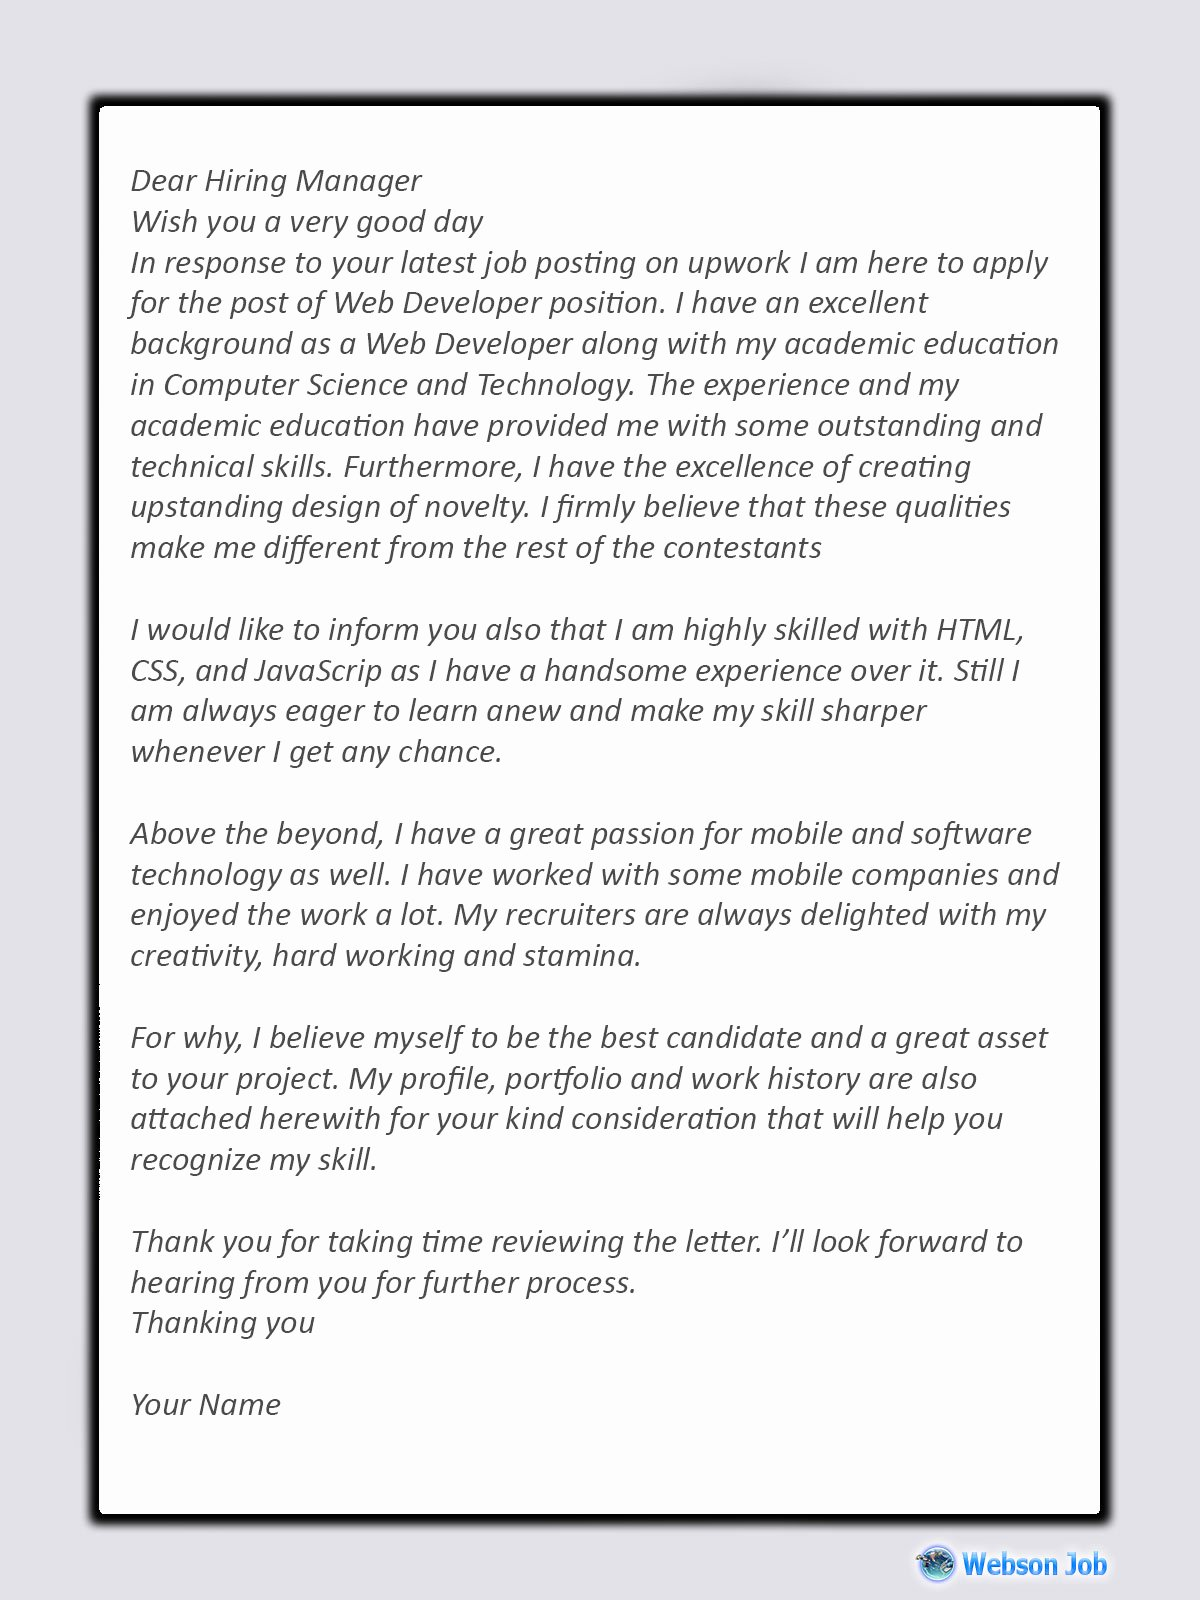 Cover Letter for Net Developer New Web Developer Proposal Sample for Upwork Webson Job